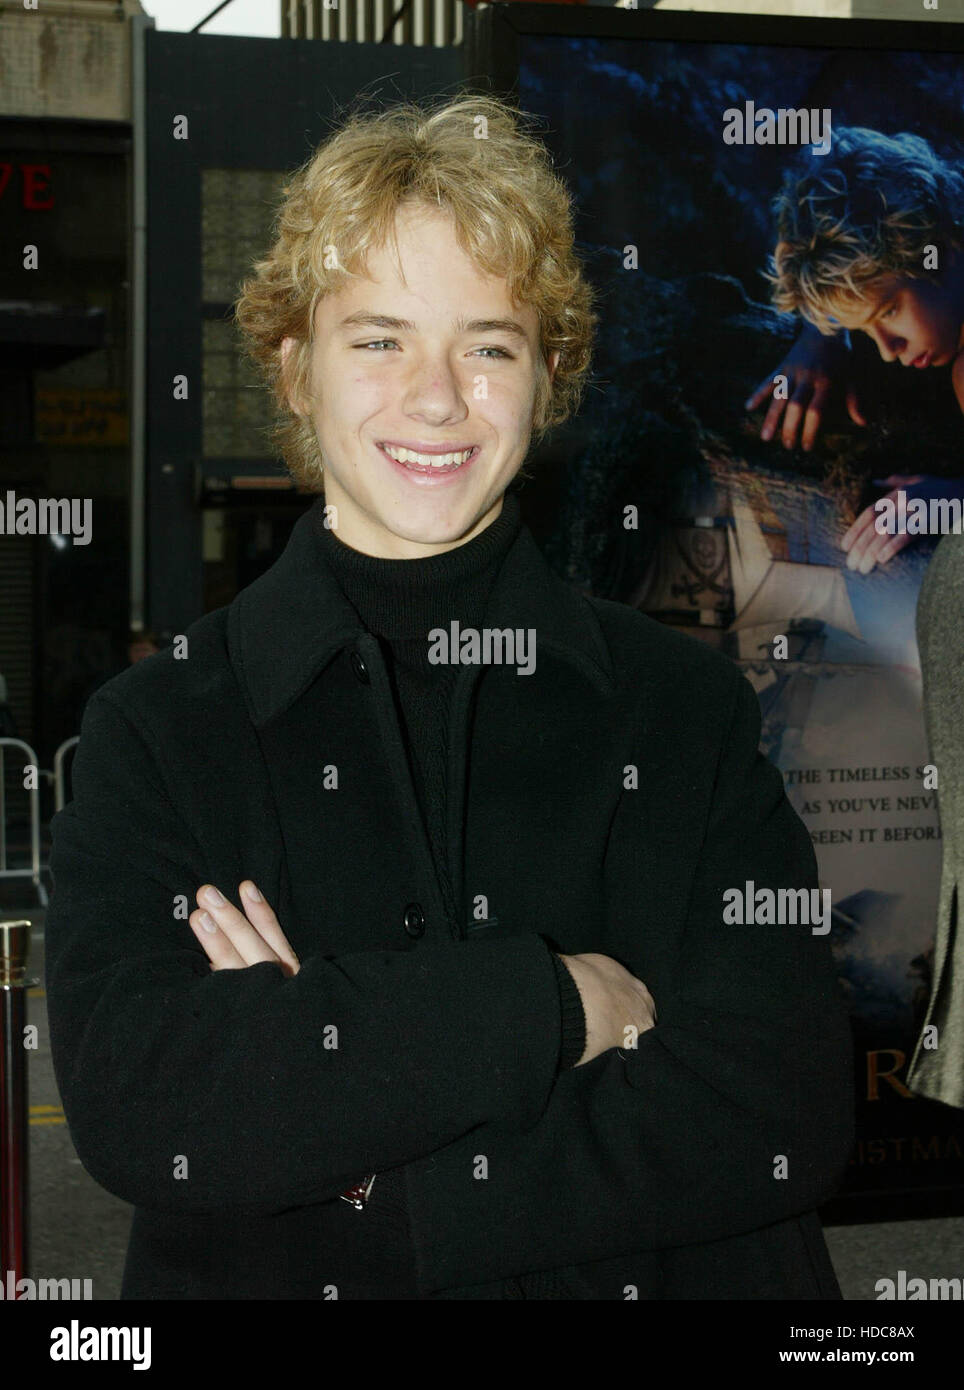 FBS05 20031213 HOLLYWOOD, UNITED STATES : Cast member Jeremy Sumpter  at  the  premiere of his film 'Peter Pan' - Stock Image